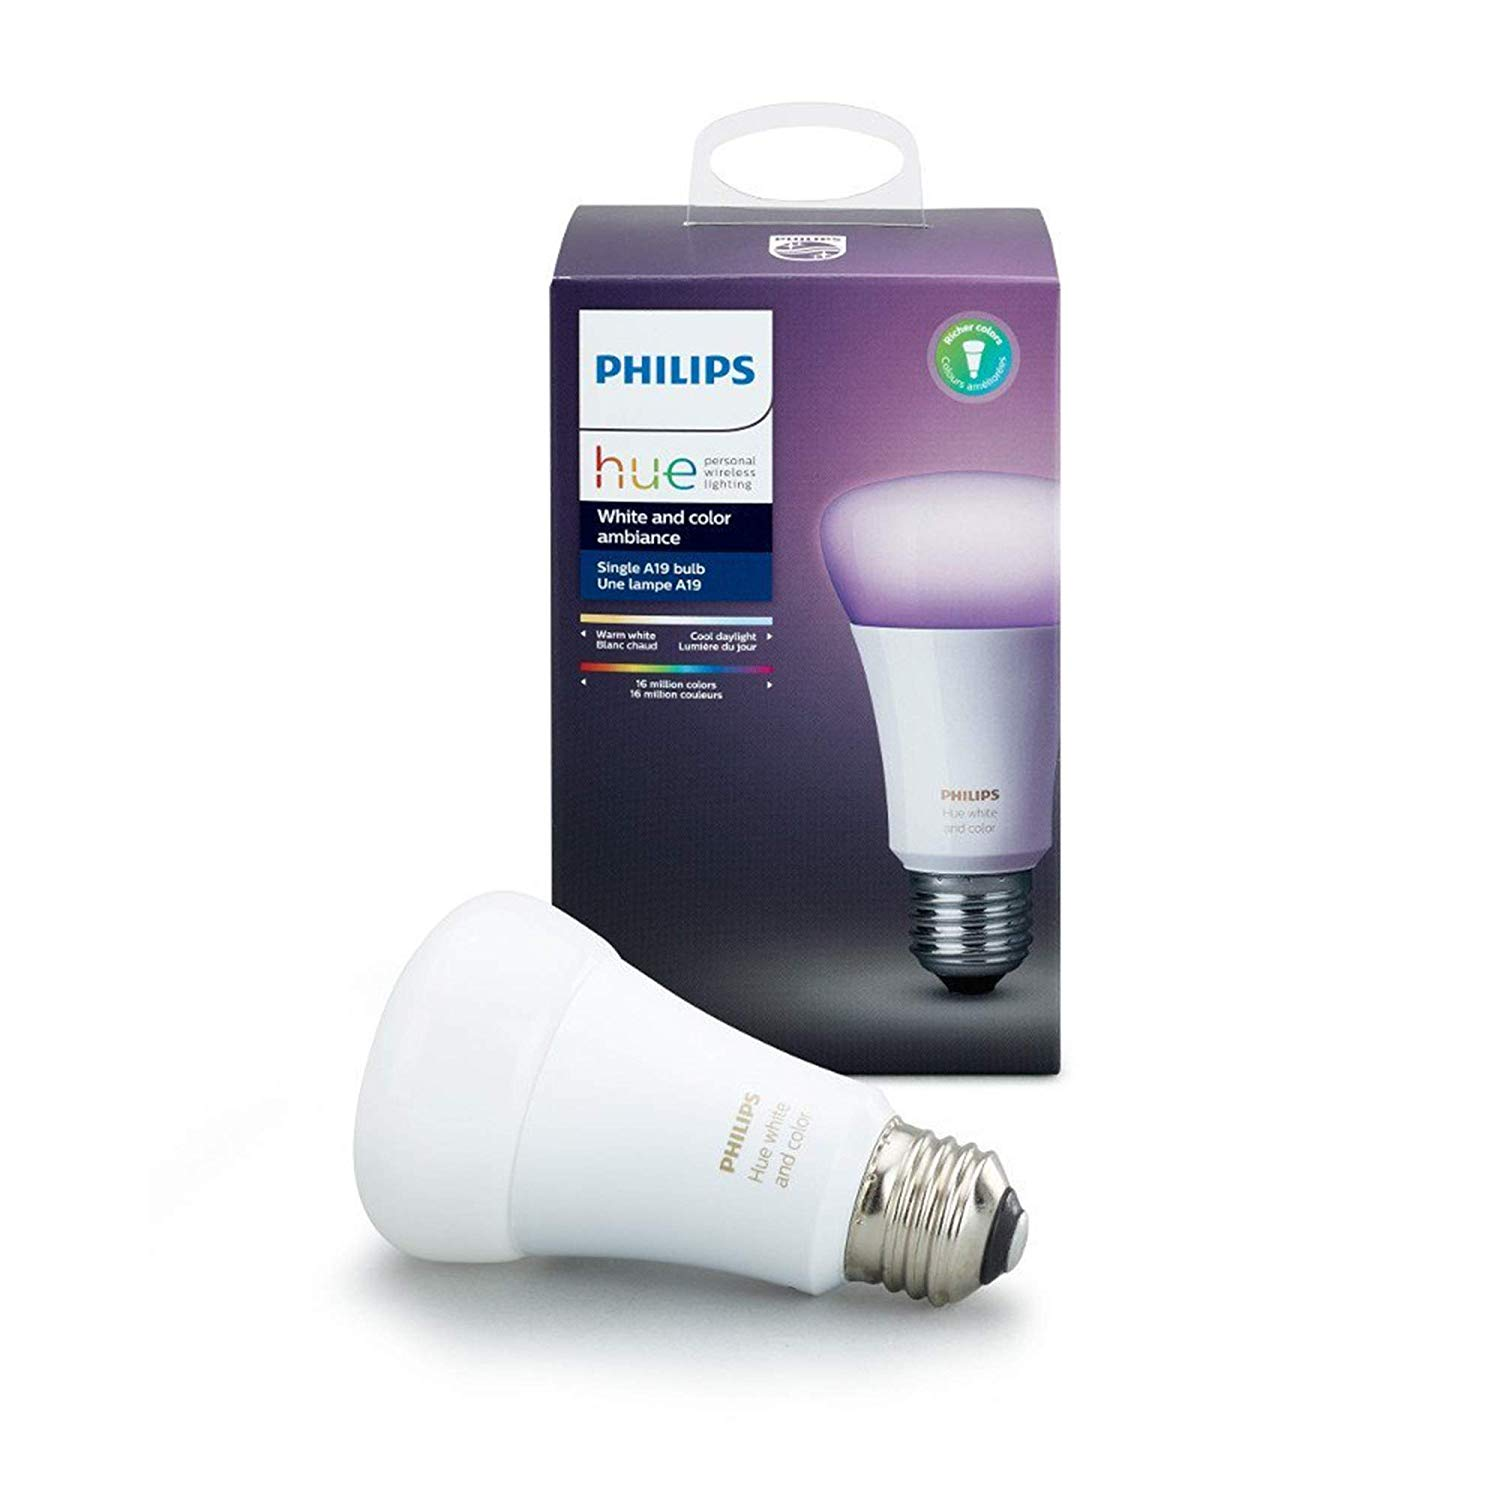 Philips Hue Single Premium Smart Bulb